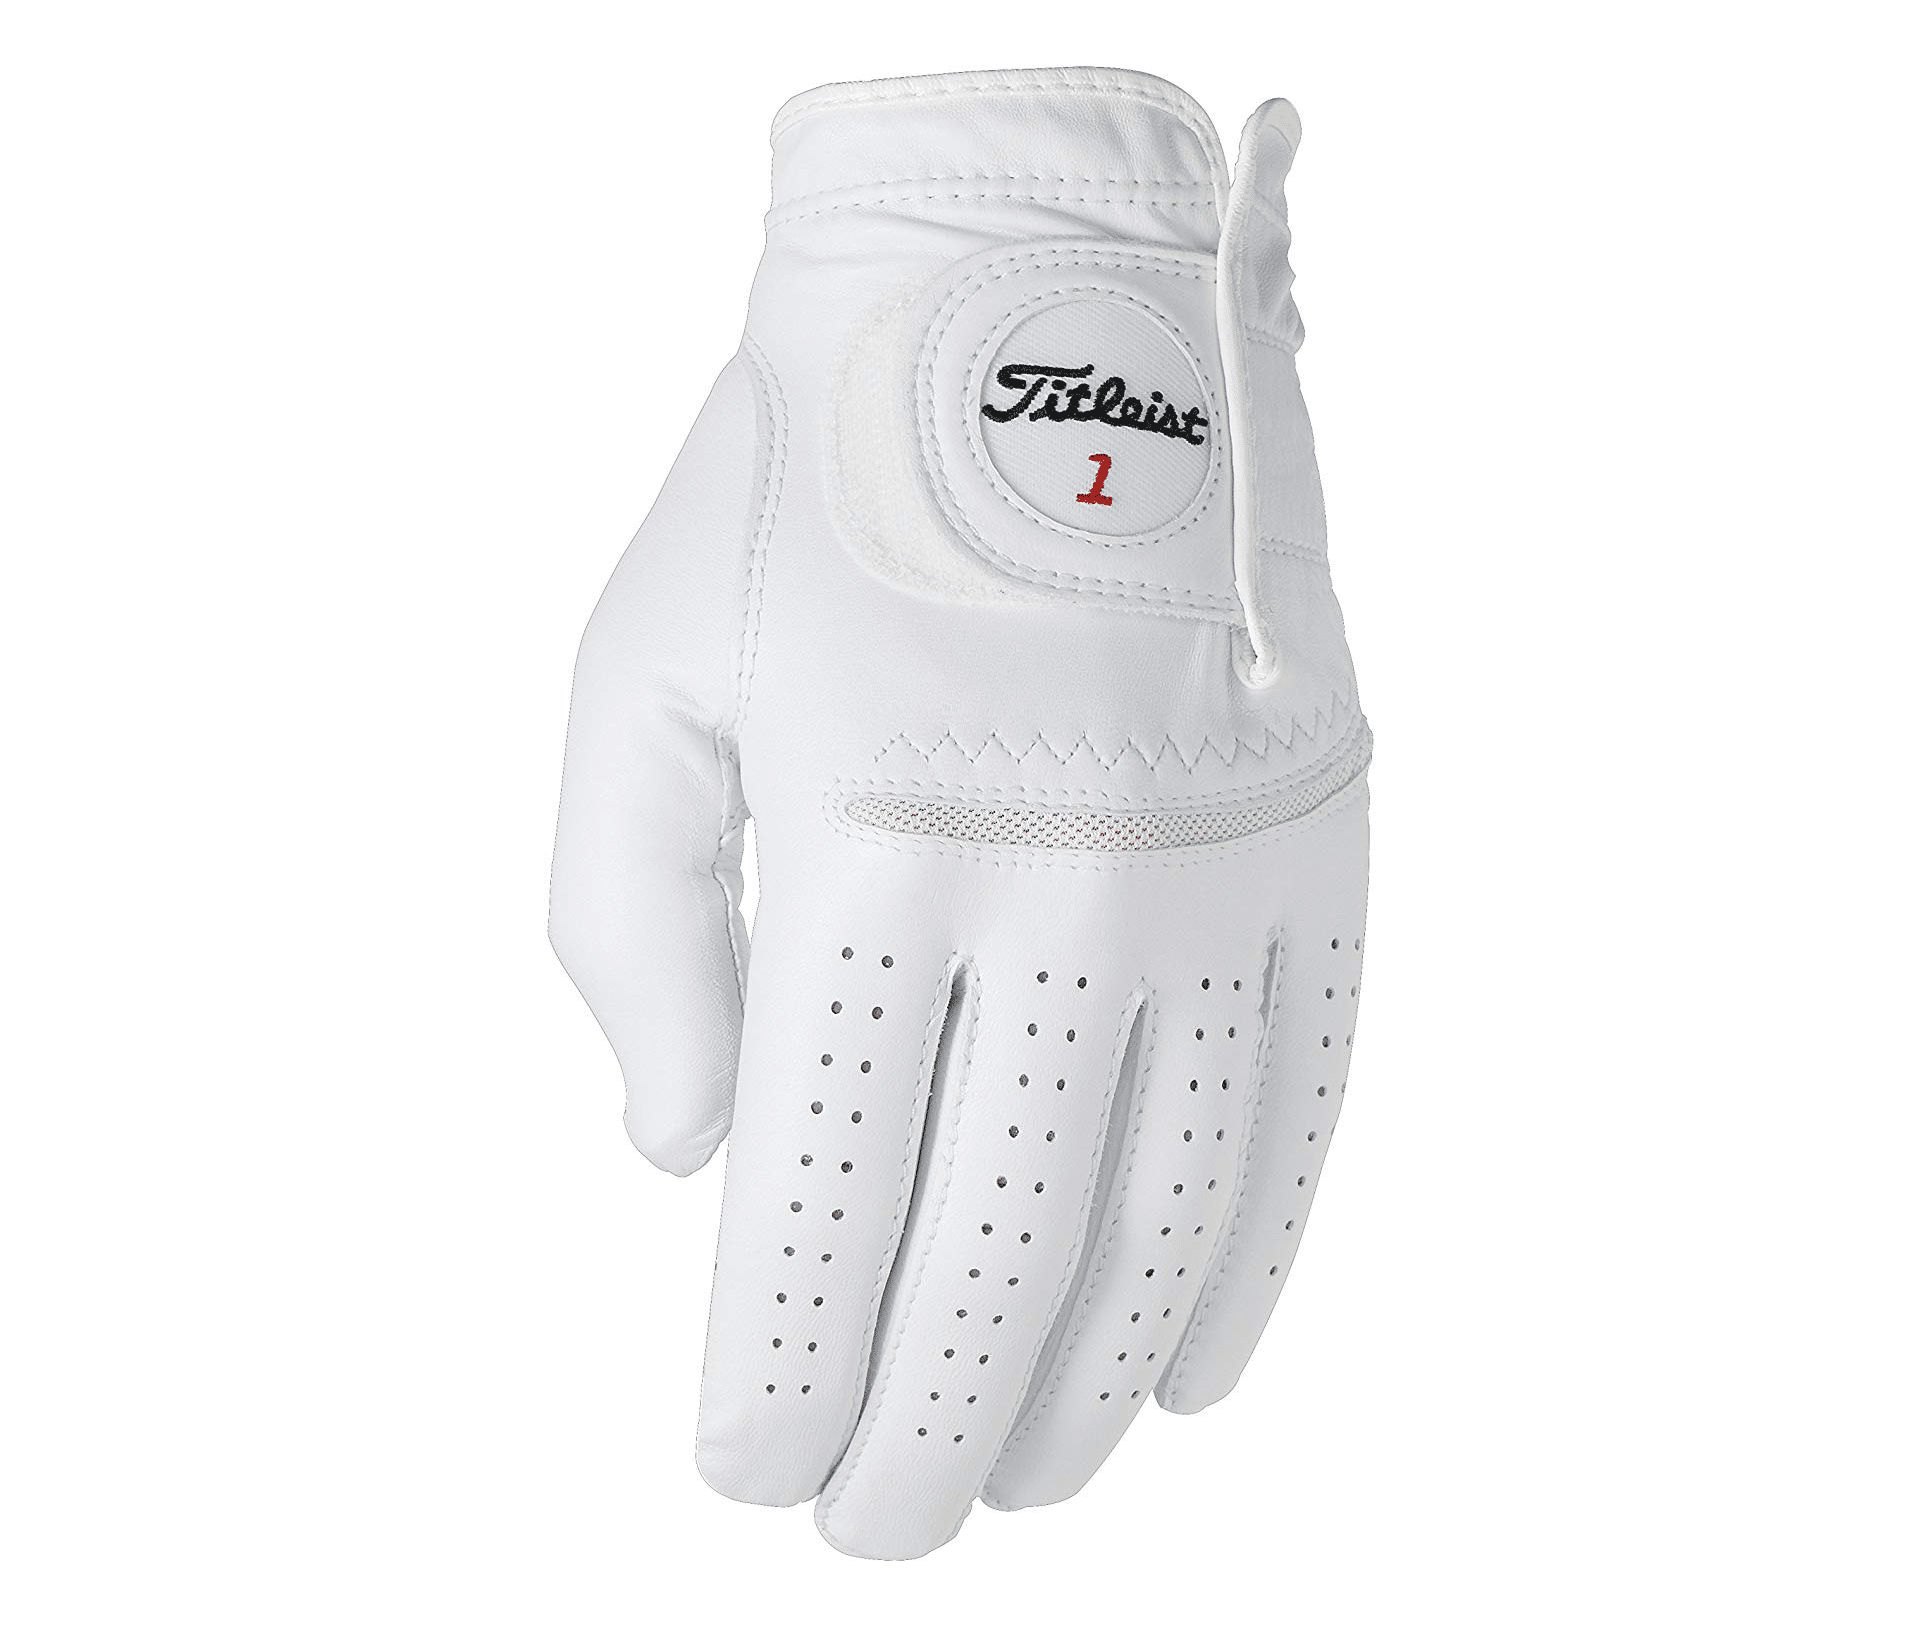 Titleist Men's Perma Soft Golf Glove